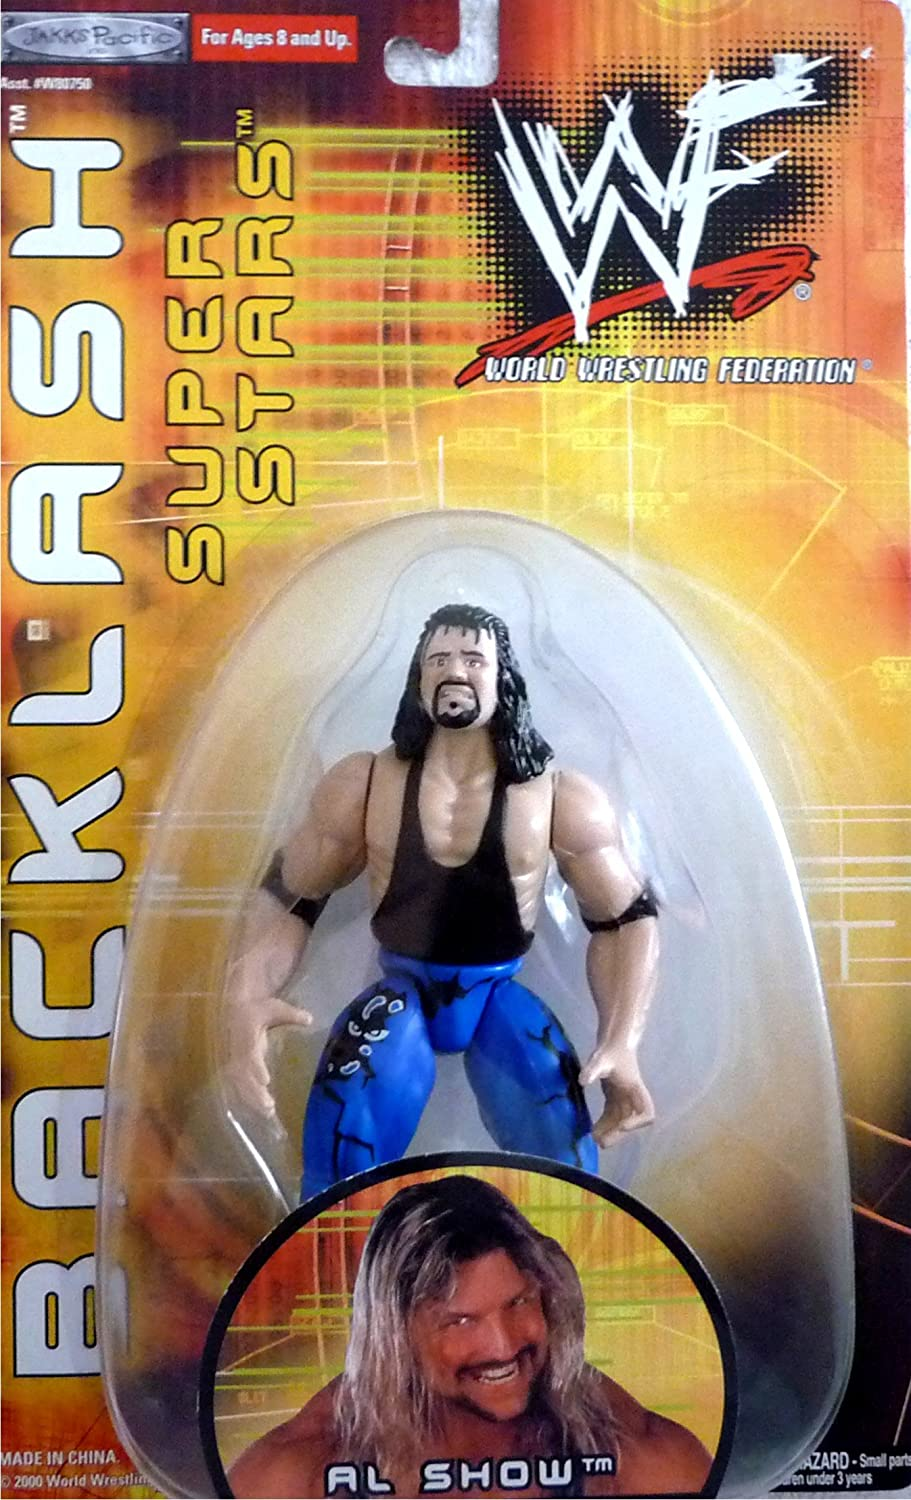 AL SNOW WWE WWF Wrestling Exclusive Backlash Toy Figure by Jakks Pacific